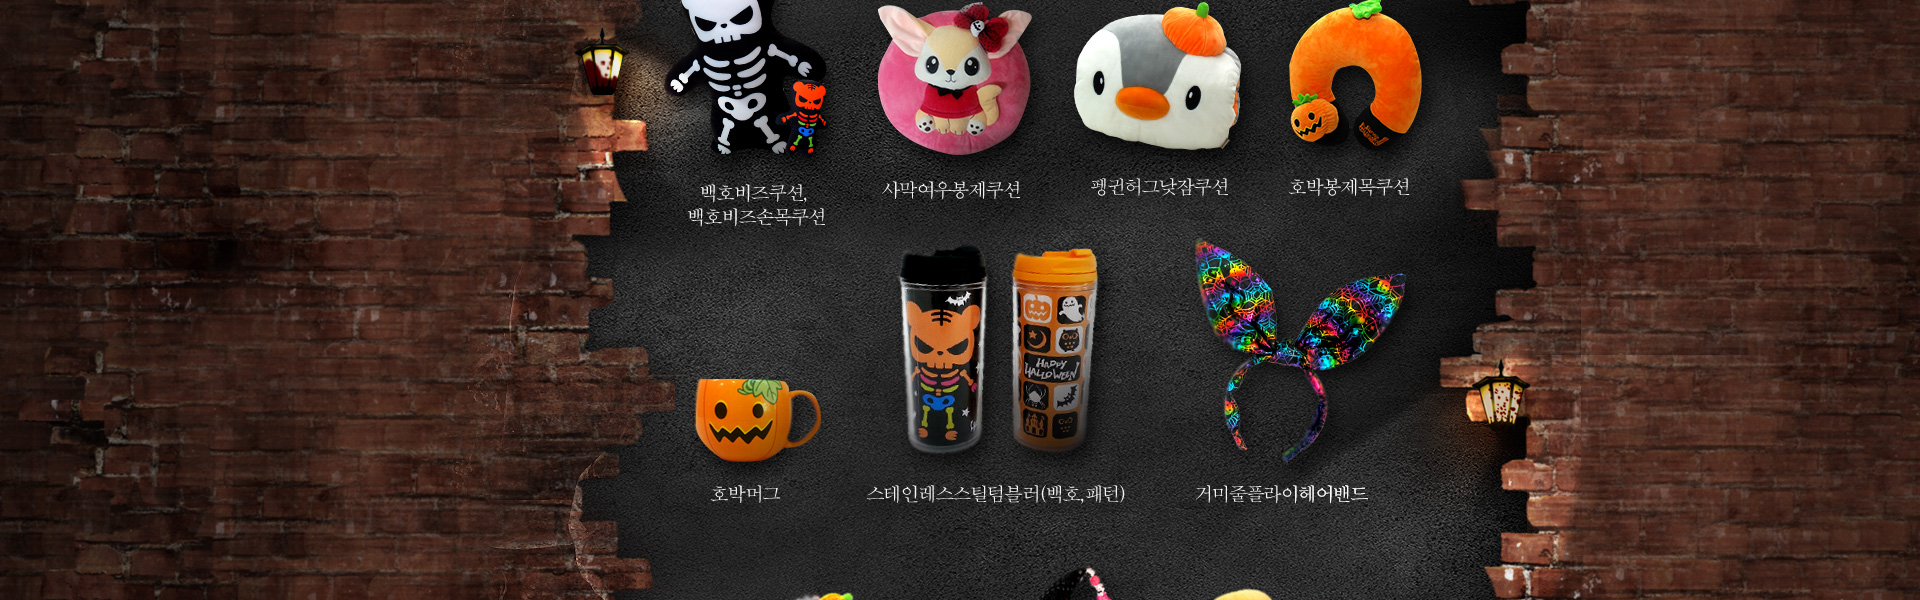 에버랜드리조트 - HALLOWEEN&HORROR NIGHTS